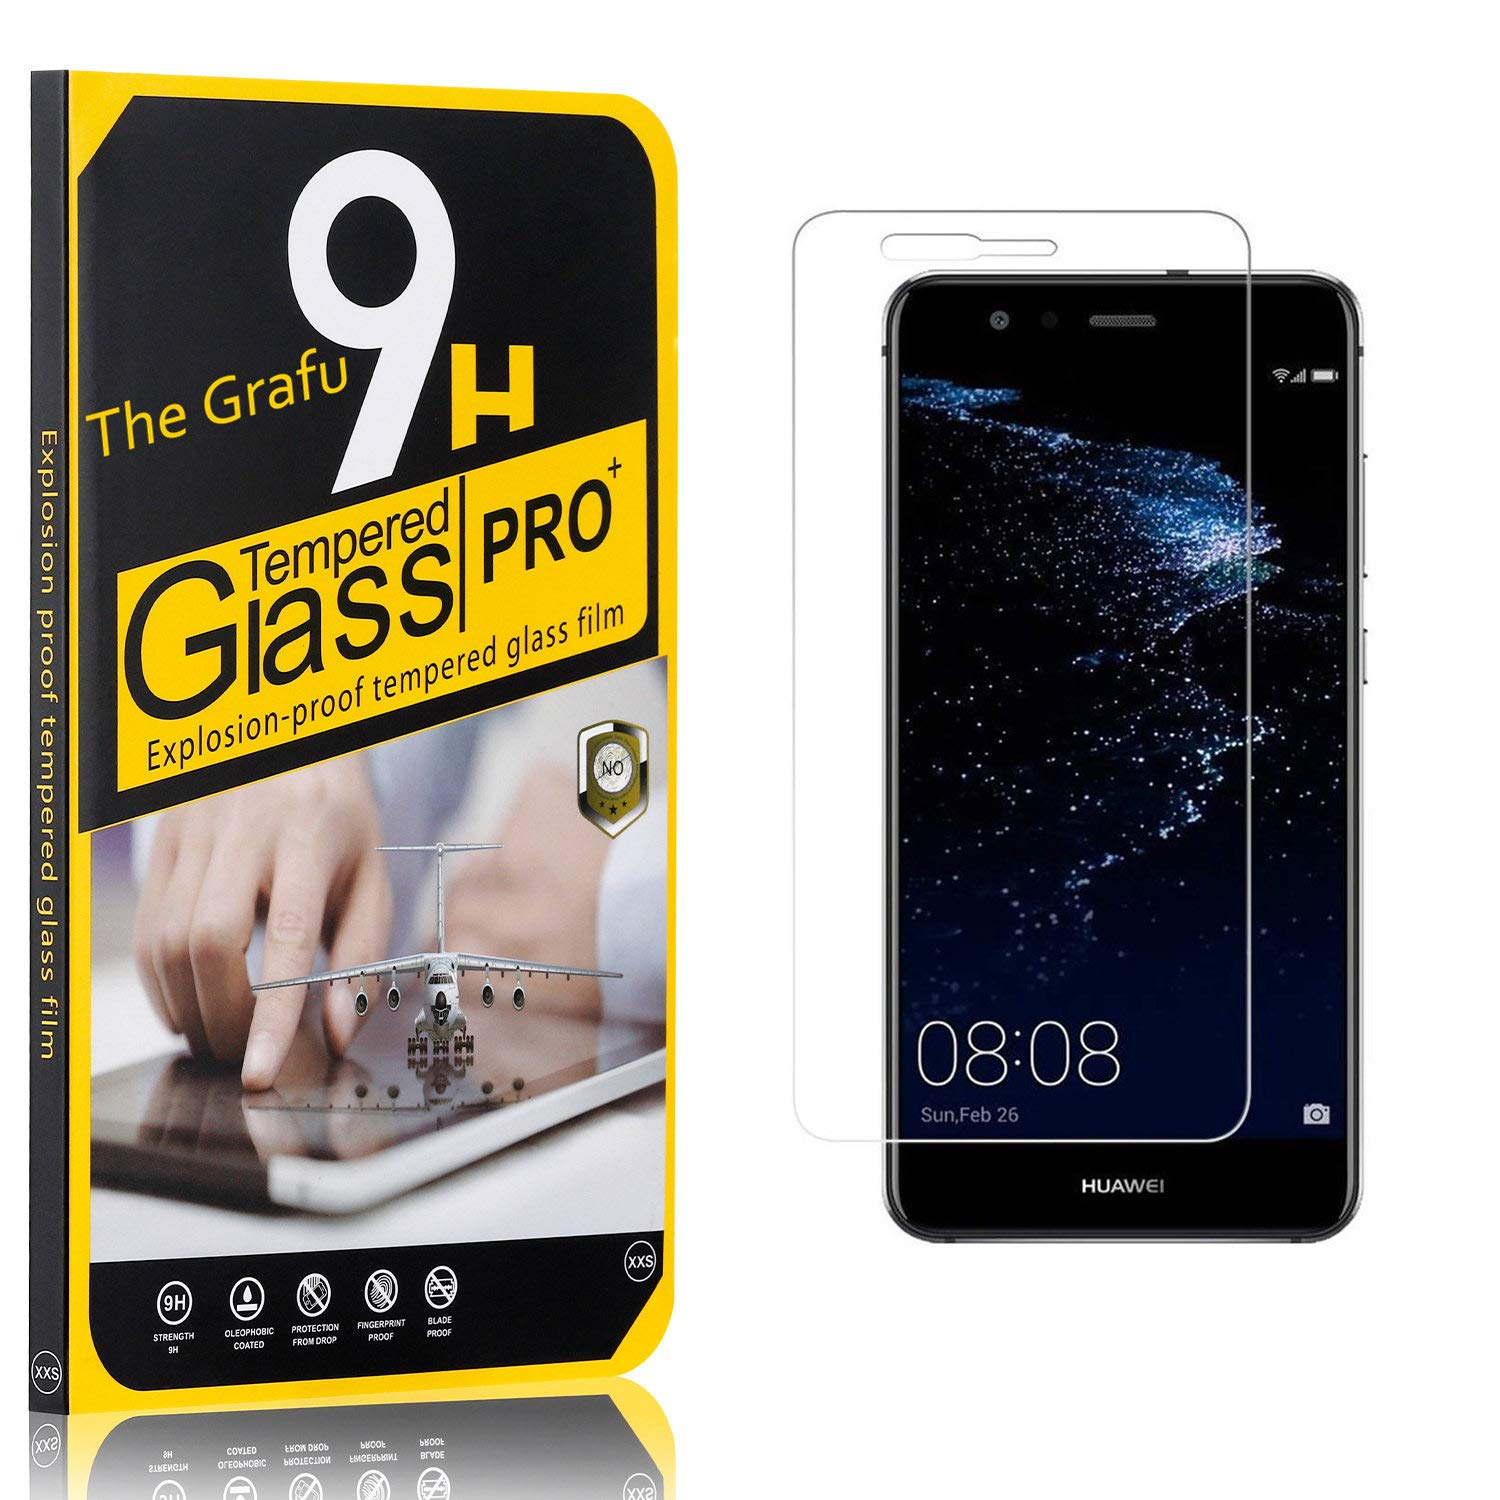 The Grafu Screen Protector for Huawei P10 Lite, Bubble Free, 9H Scratch Resistant Tempered Glass Screen Protector Film Compatible with Huawei P10 Lite, 3 Pack